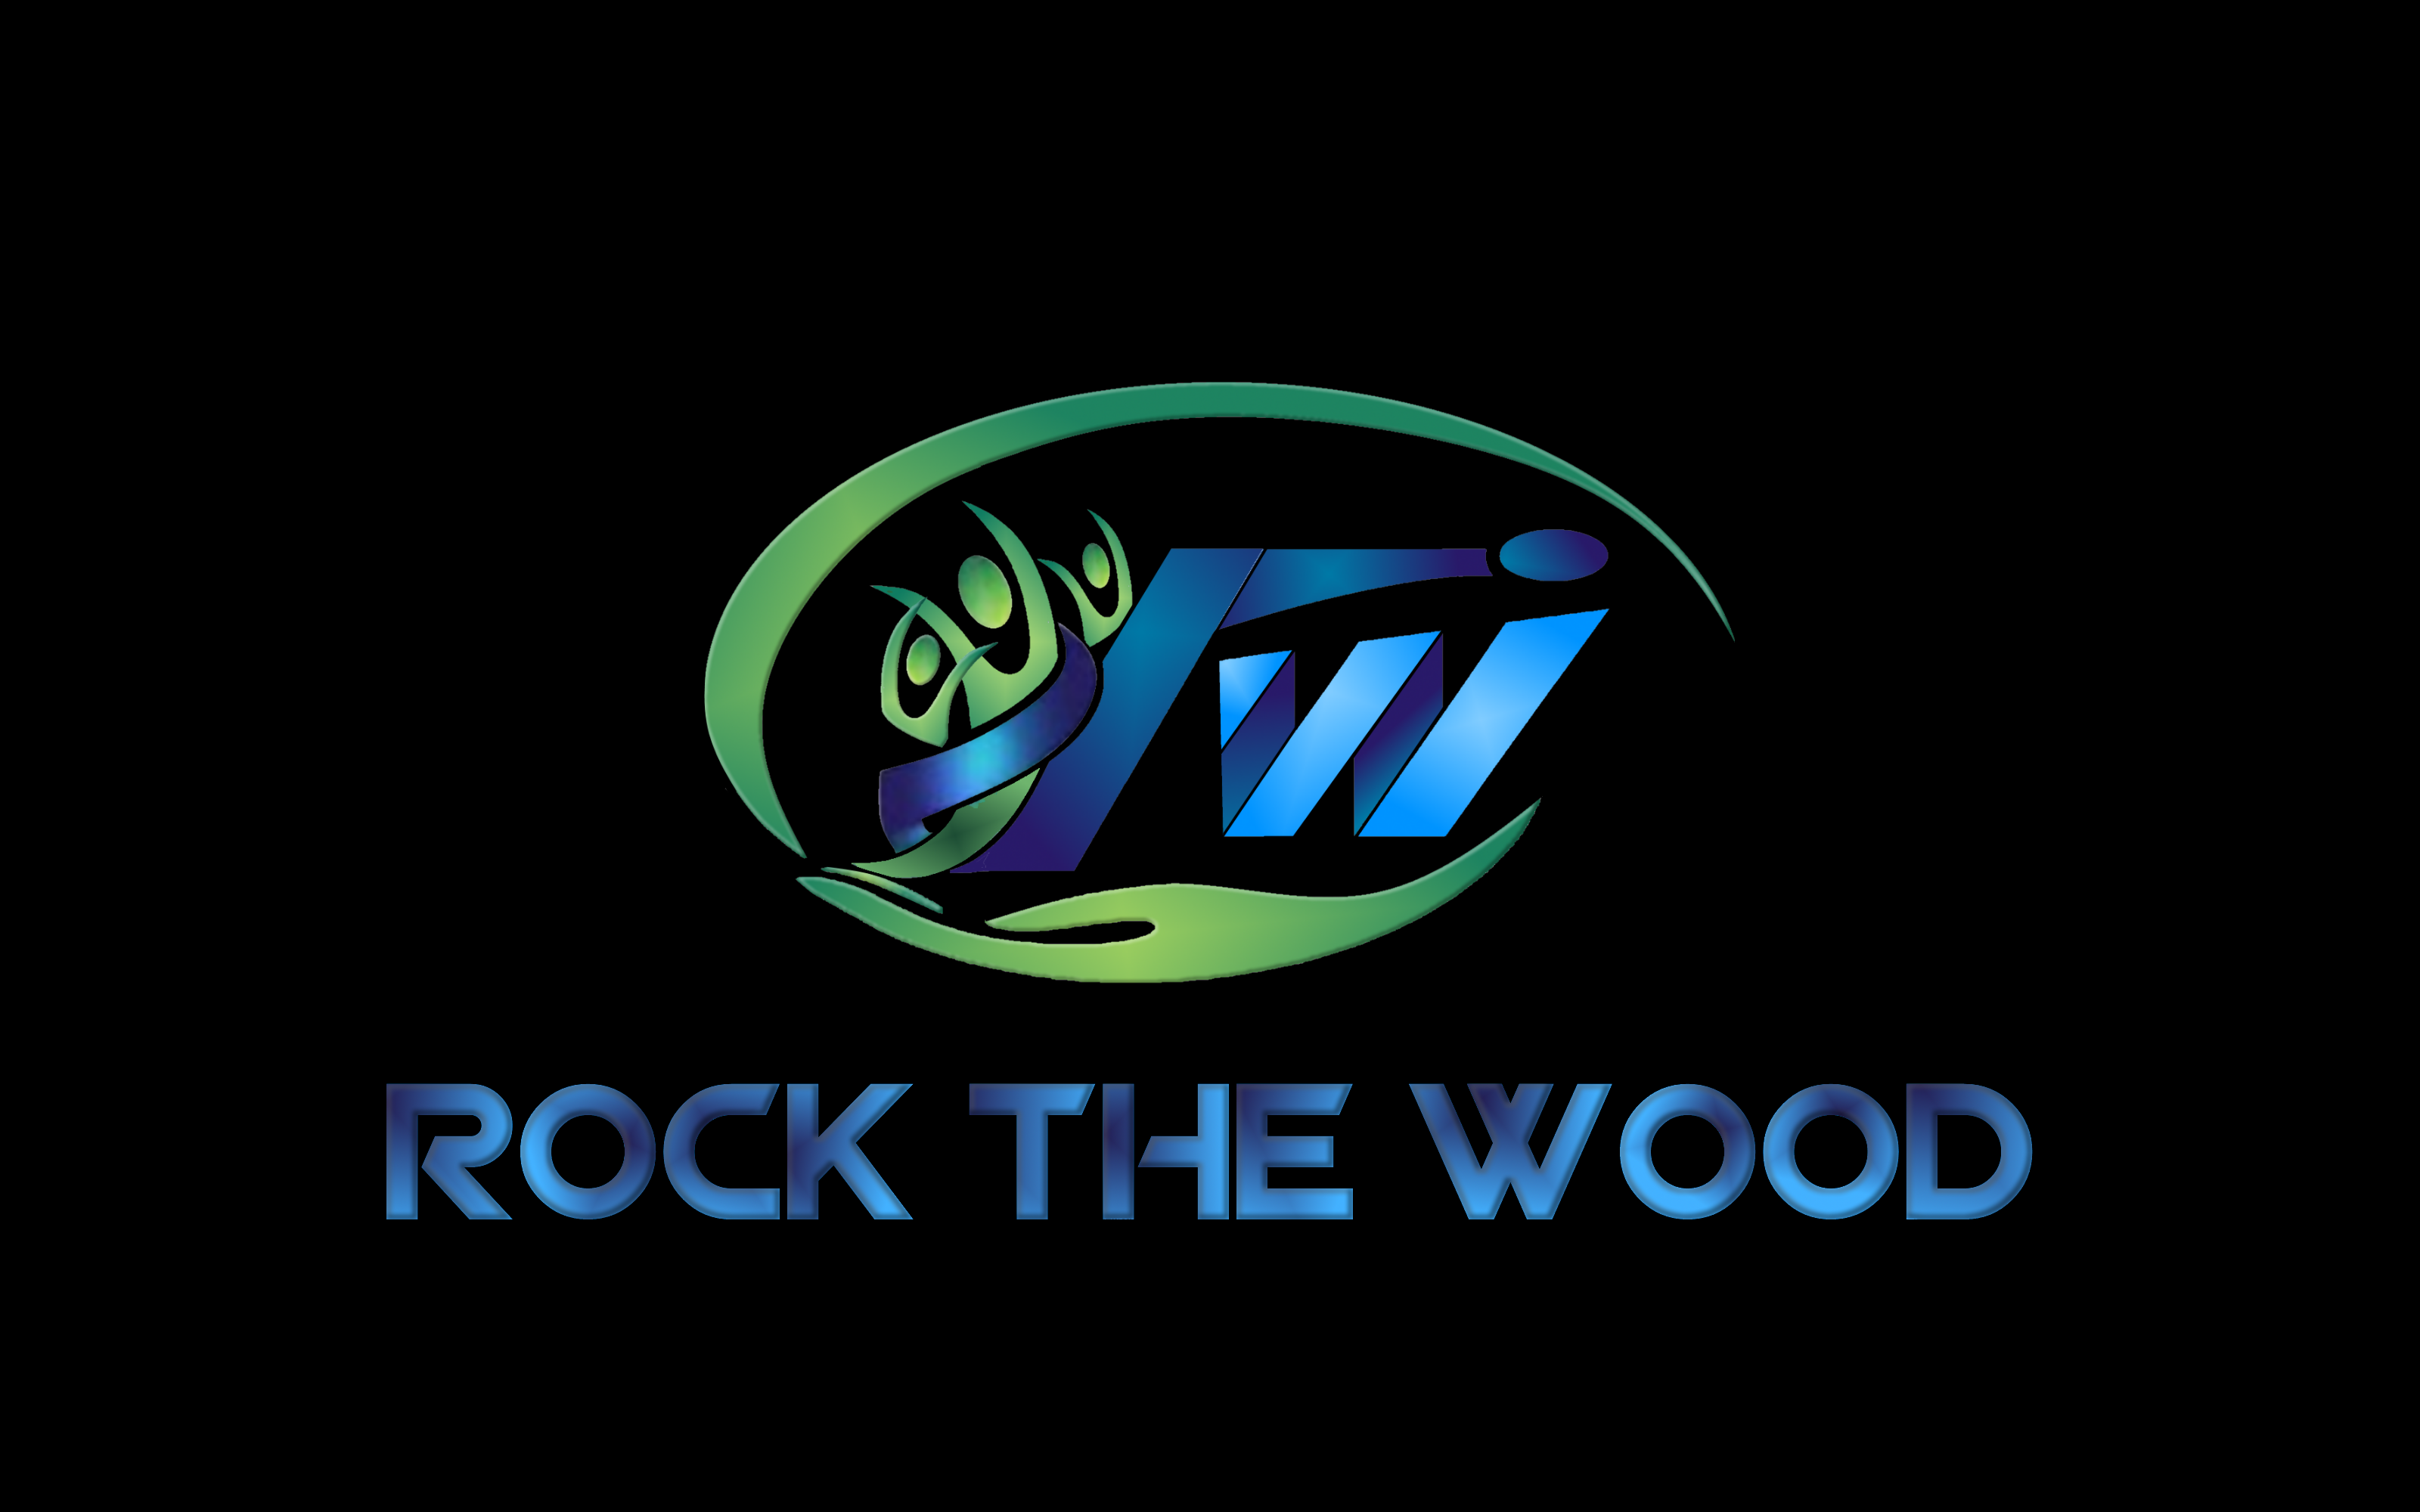 Logo Design by Roberto Bassi - Entry No. 33 in the Logo Design Contest New Logo Design for Rock the Wood.